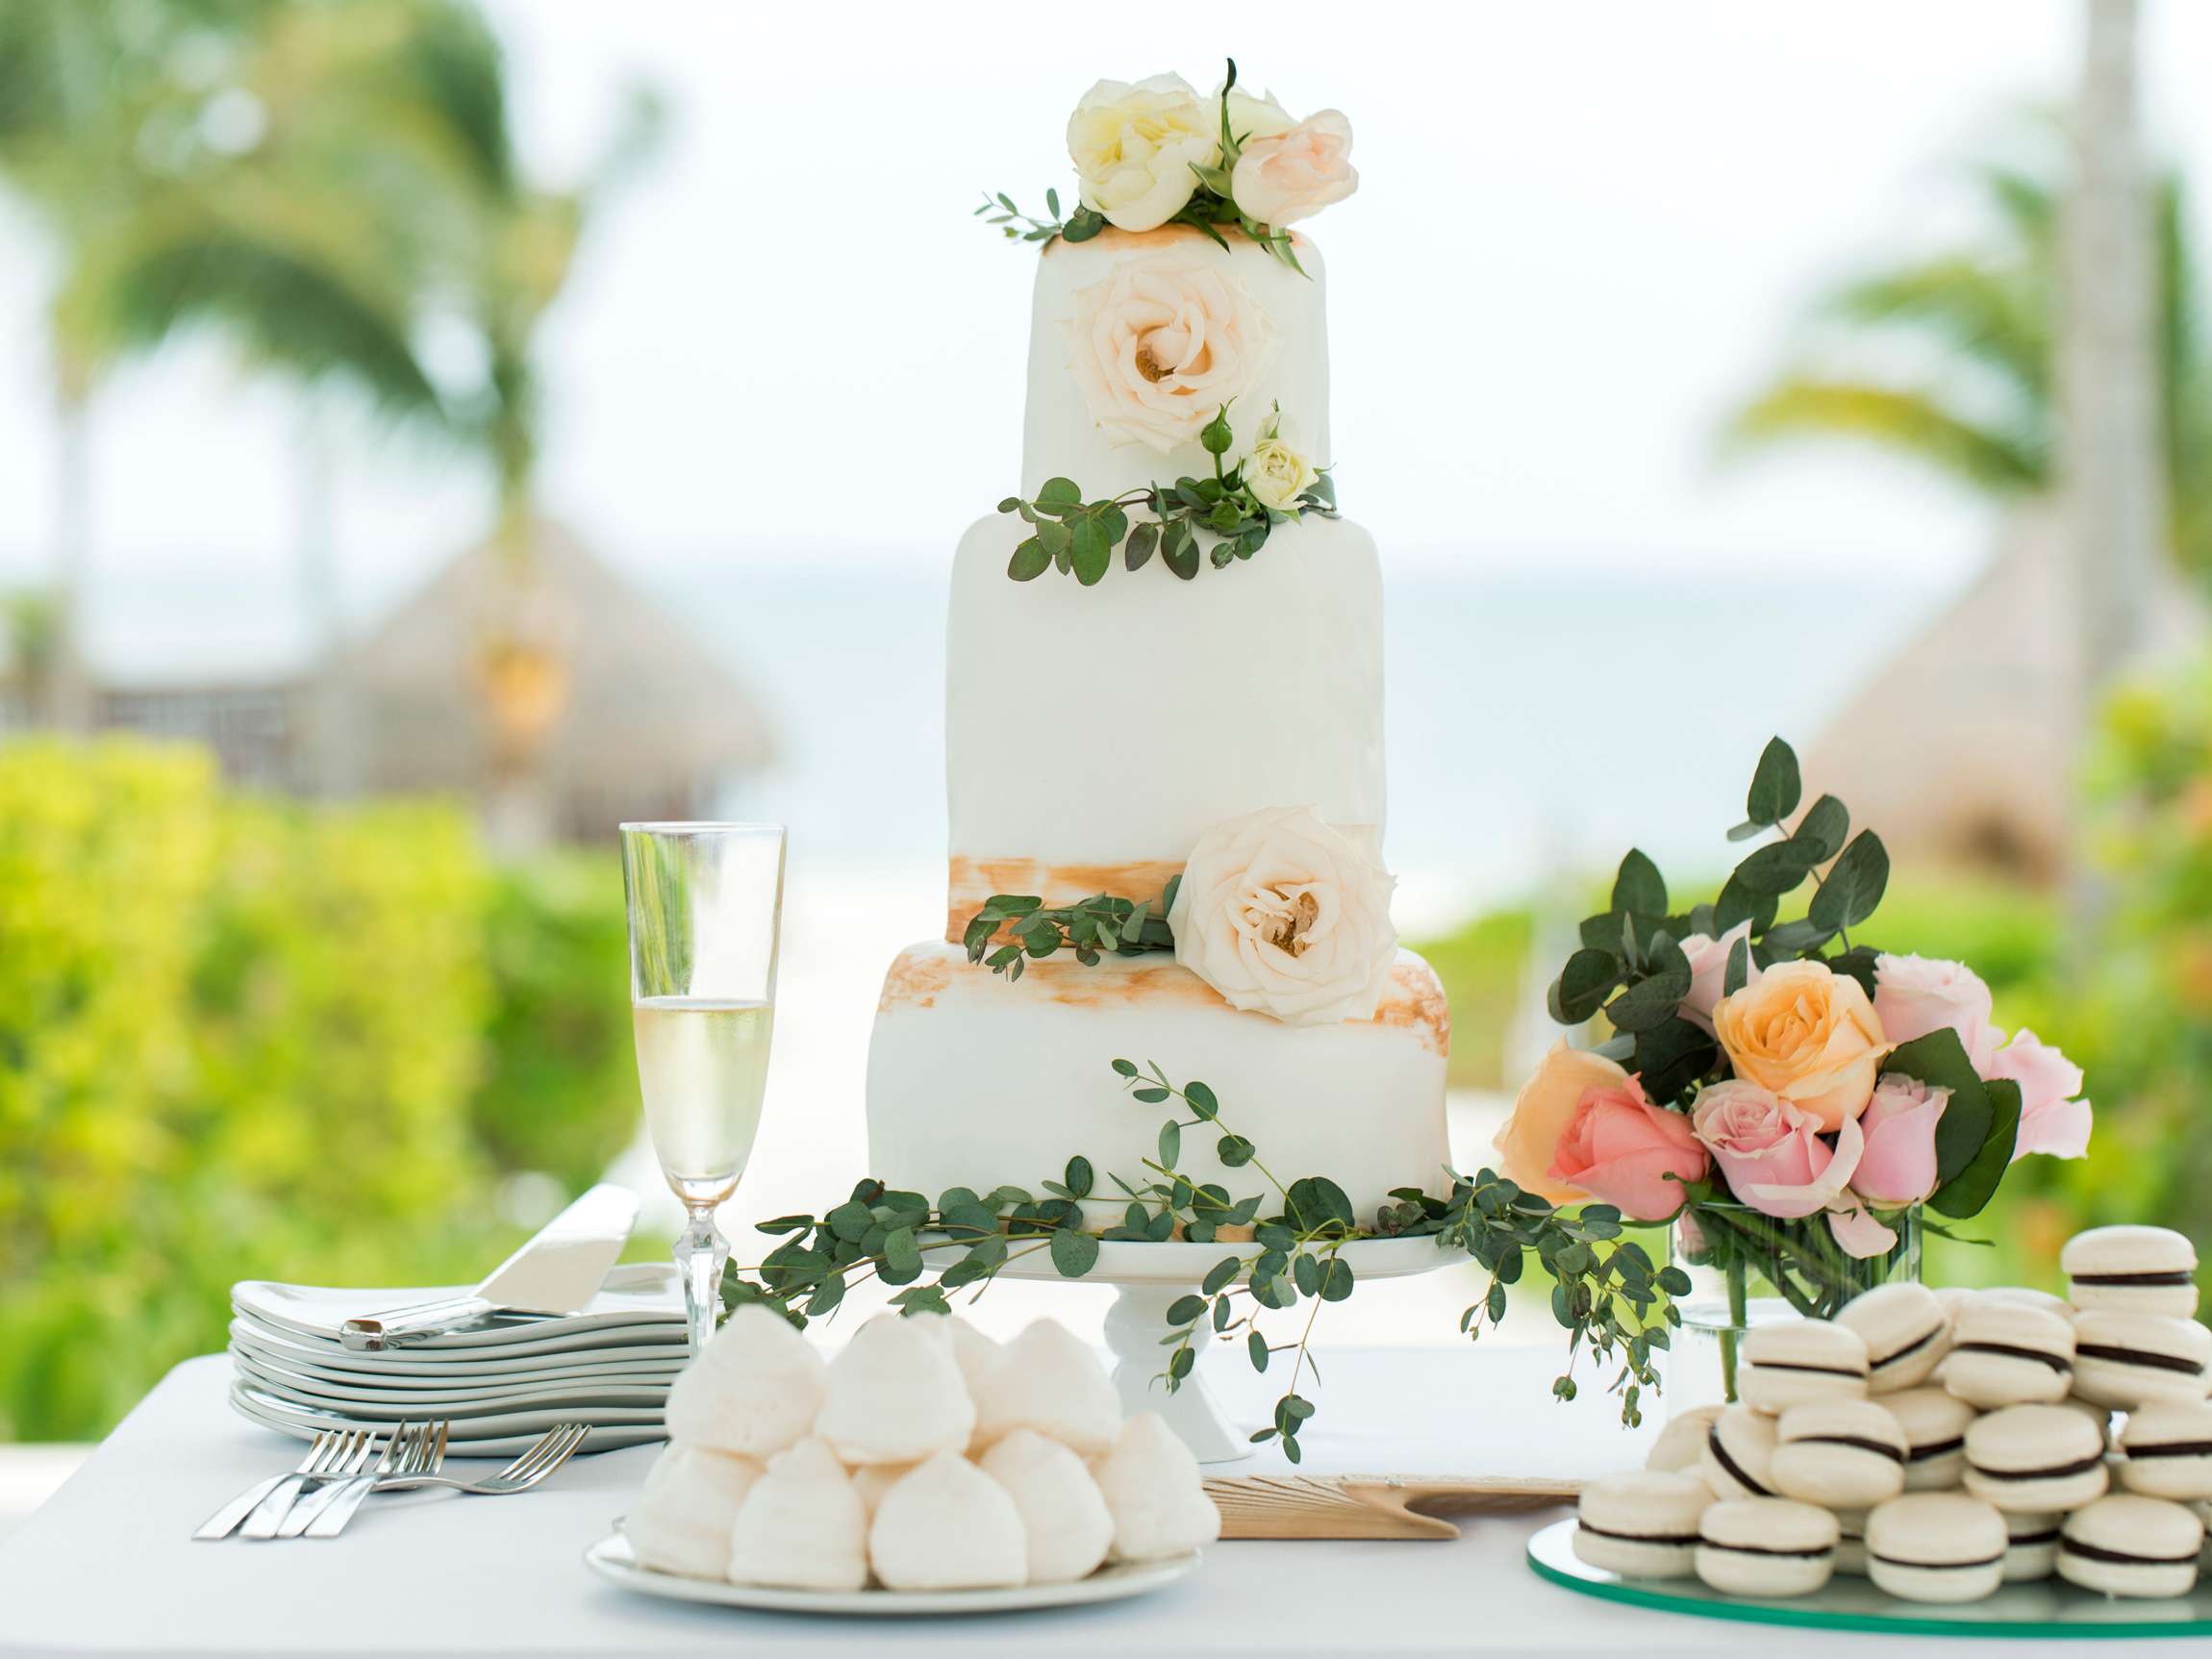 Punta Cana Destination Wedding Cake